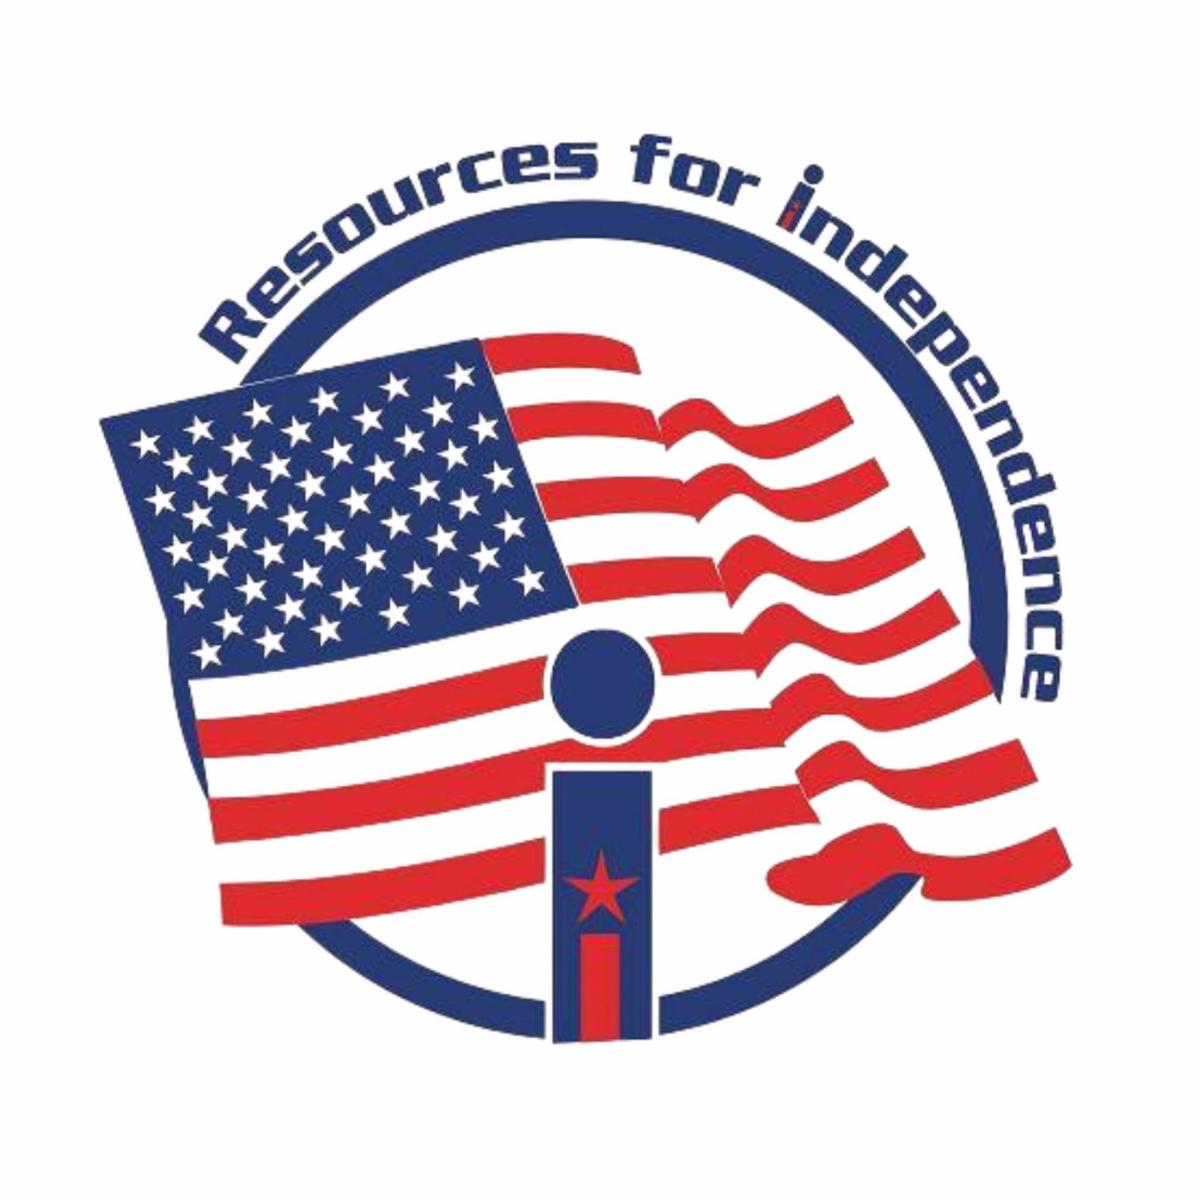 Resources for Independence logo with US flag.  Big blue _i_ with red star inside.